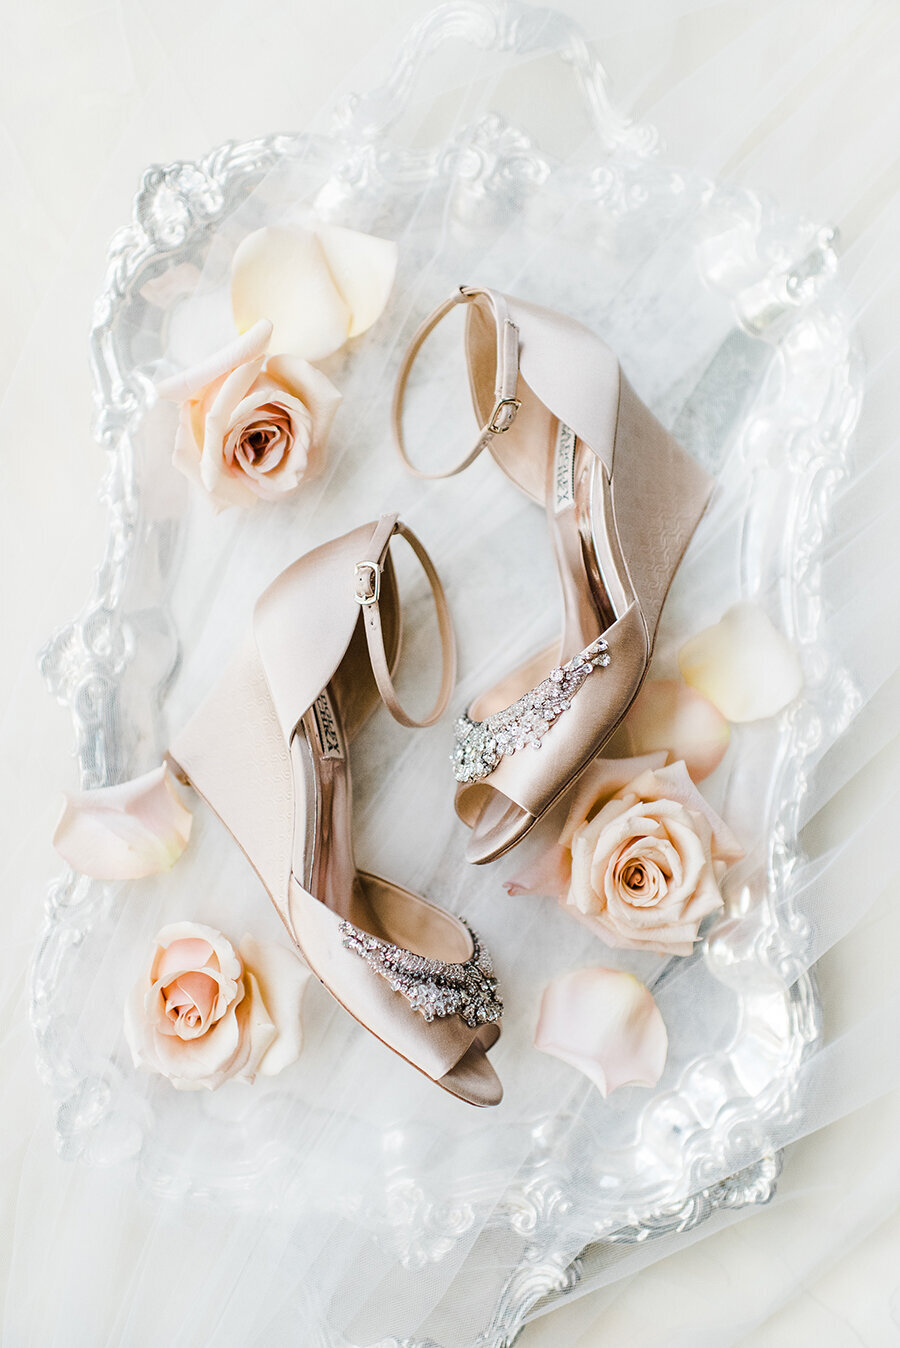 Bridal Shoes - Wedding Shoes - Bridal Heels